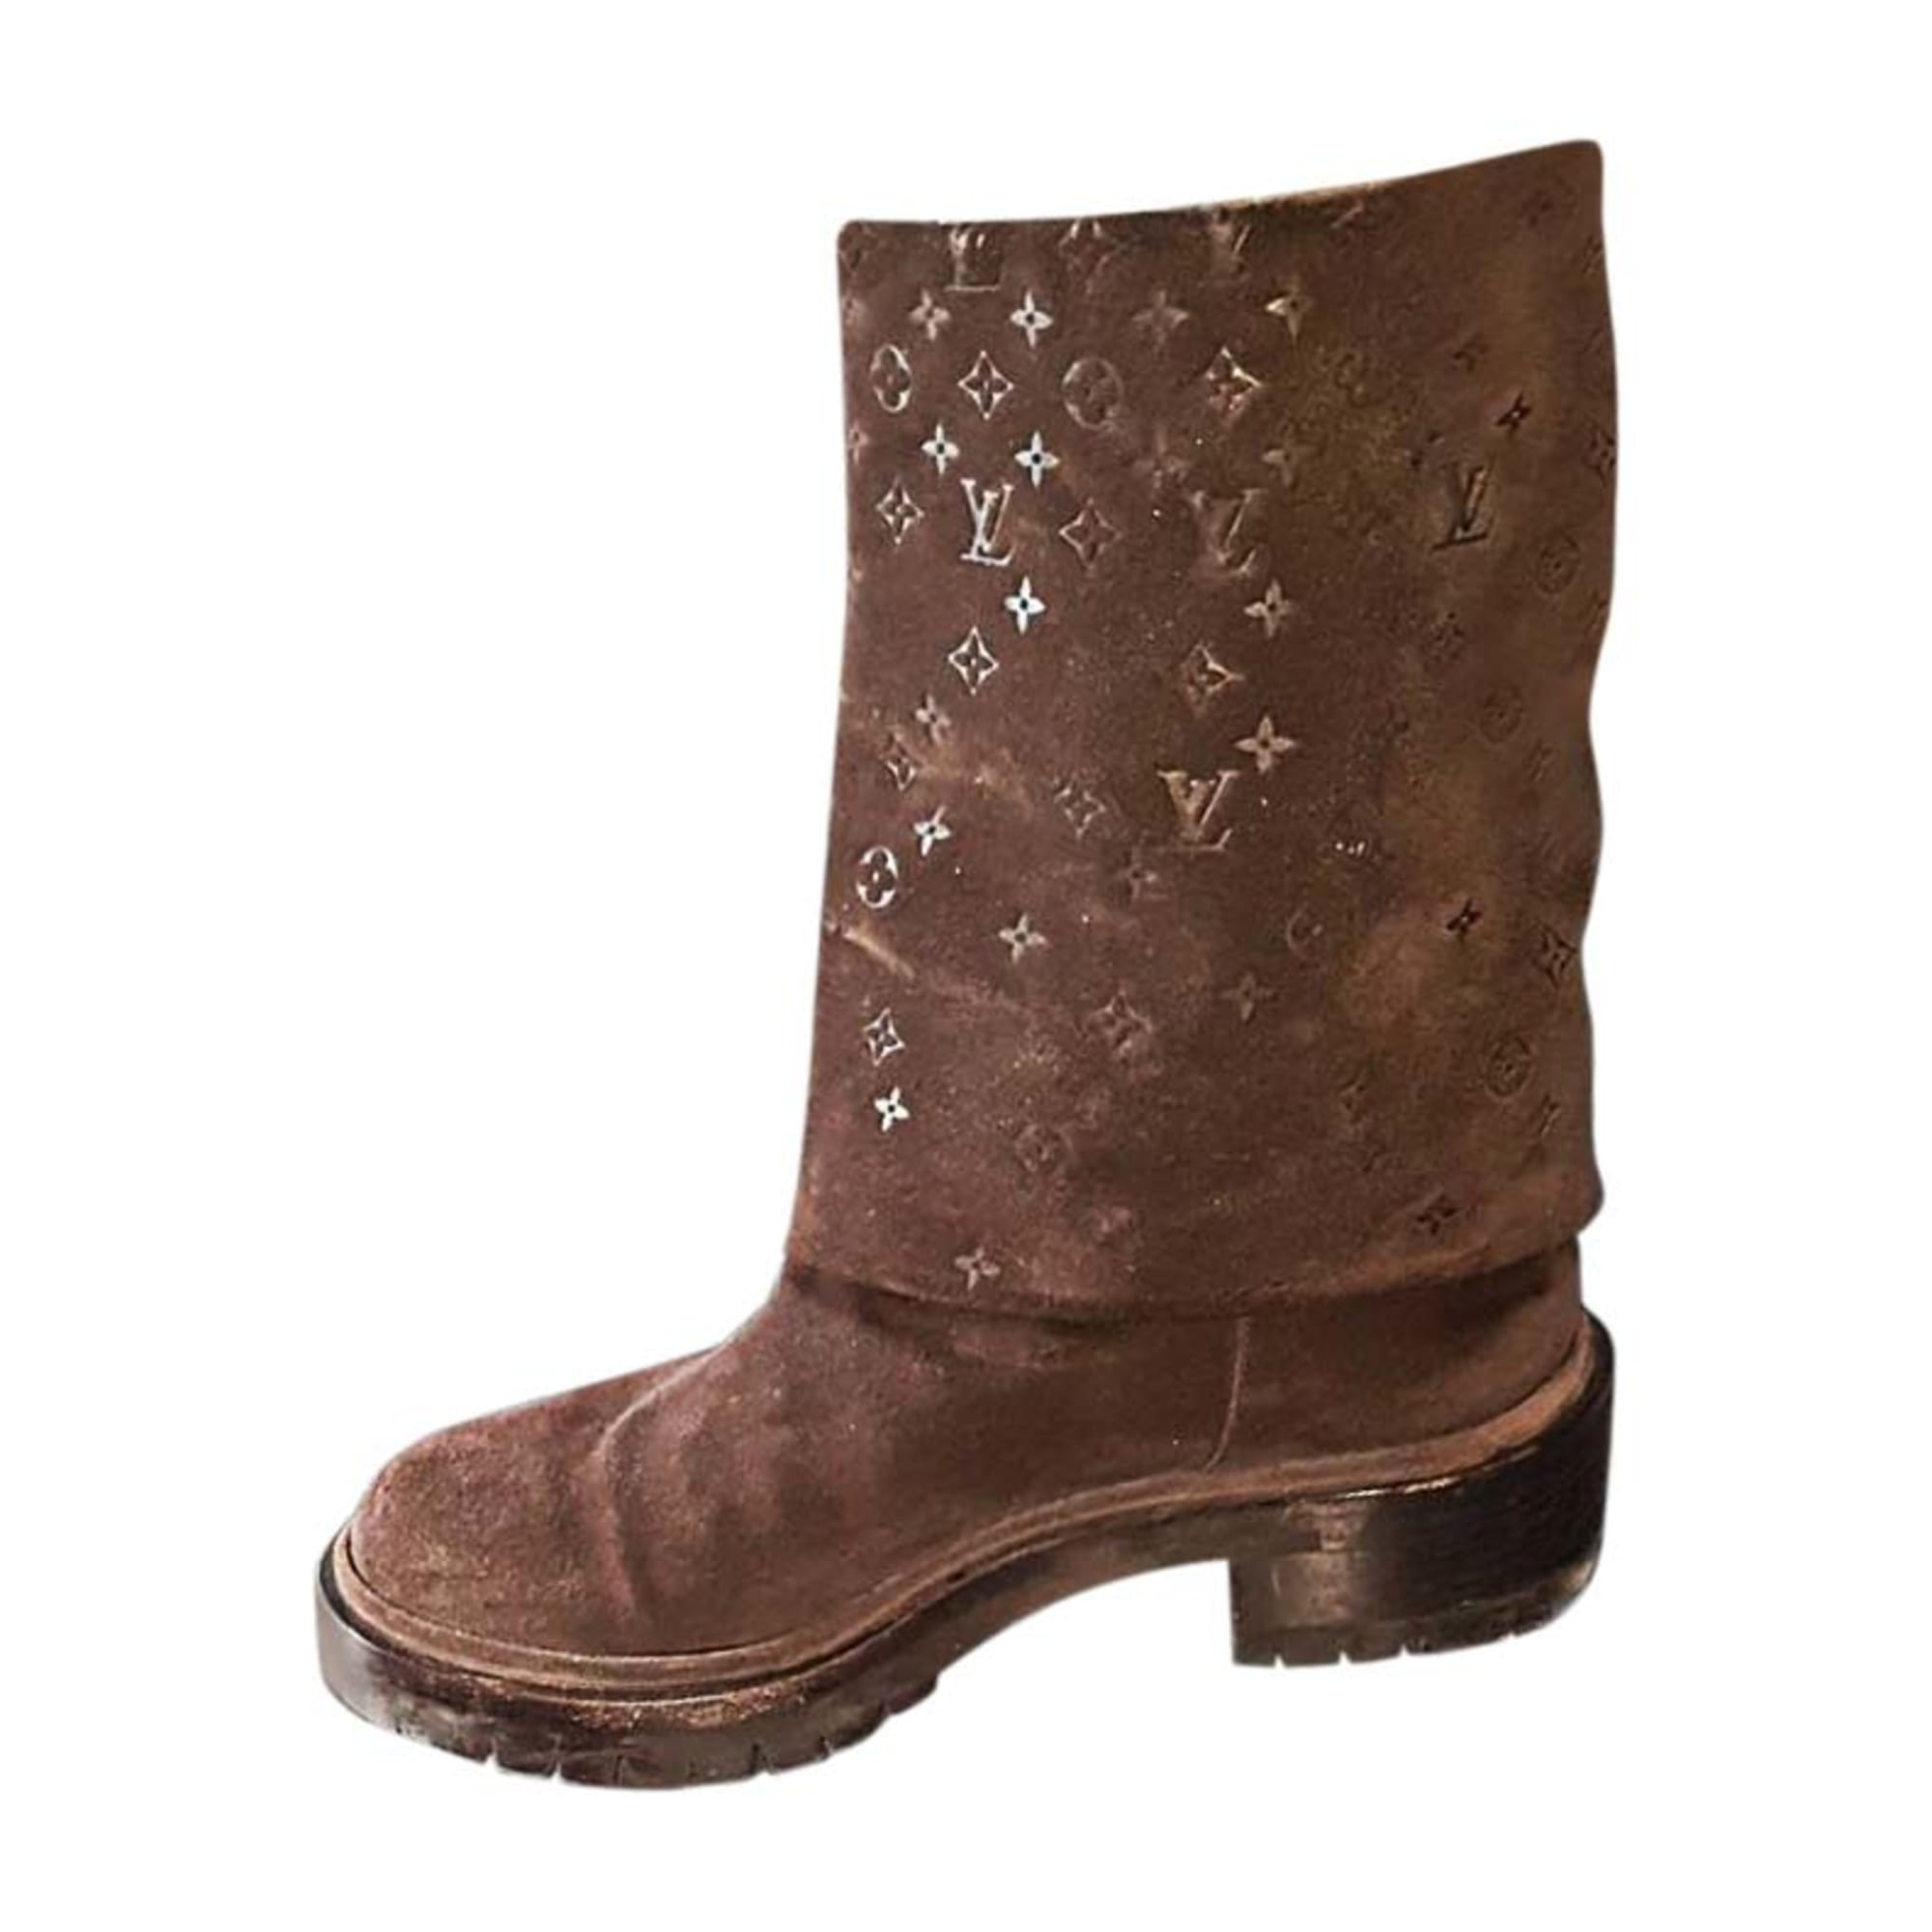 Biker Ankle Boots LOUIS VUITTON Brown